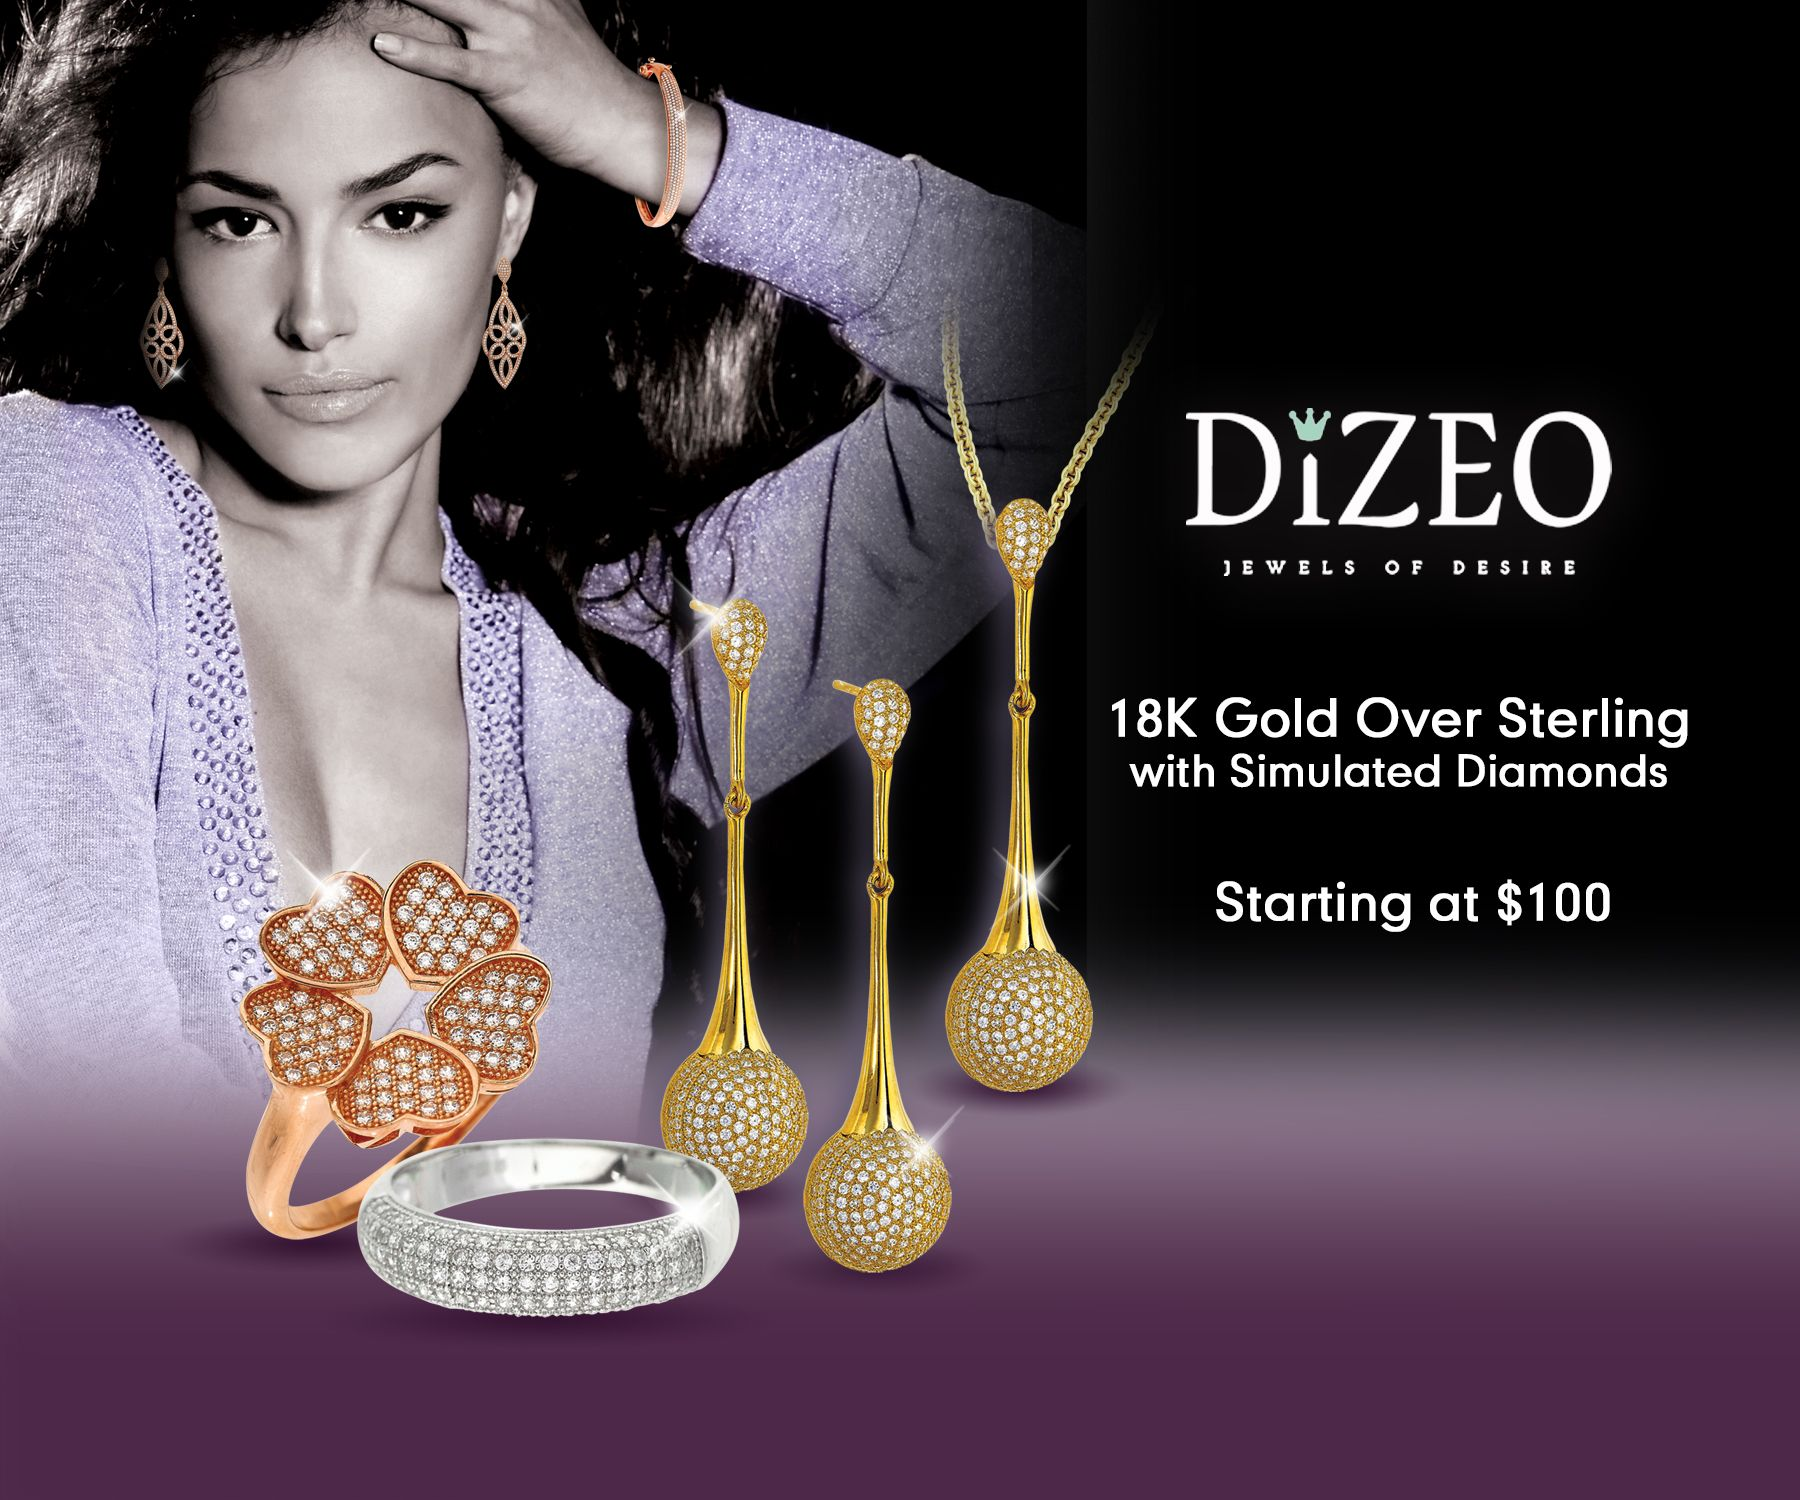 The Name Dizeo Comes From The Spanish Word For Desire